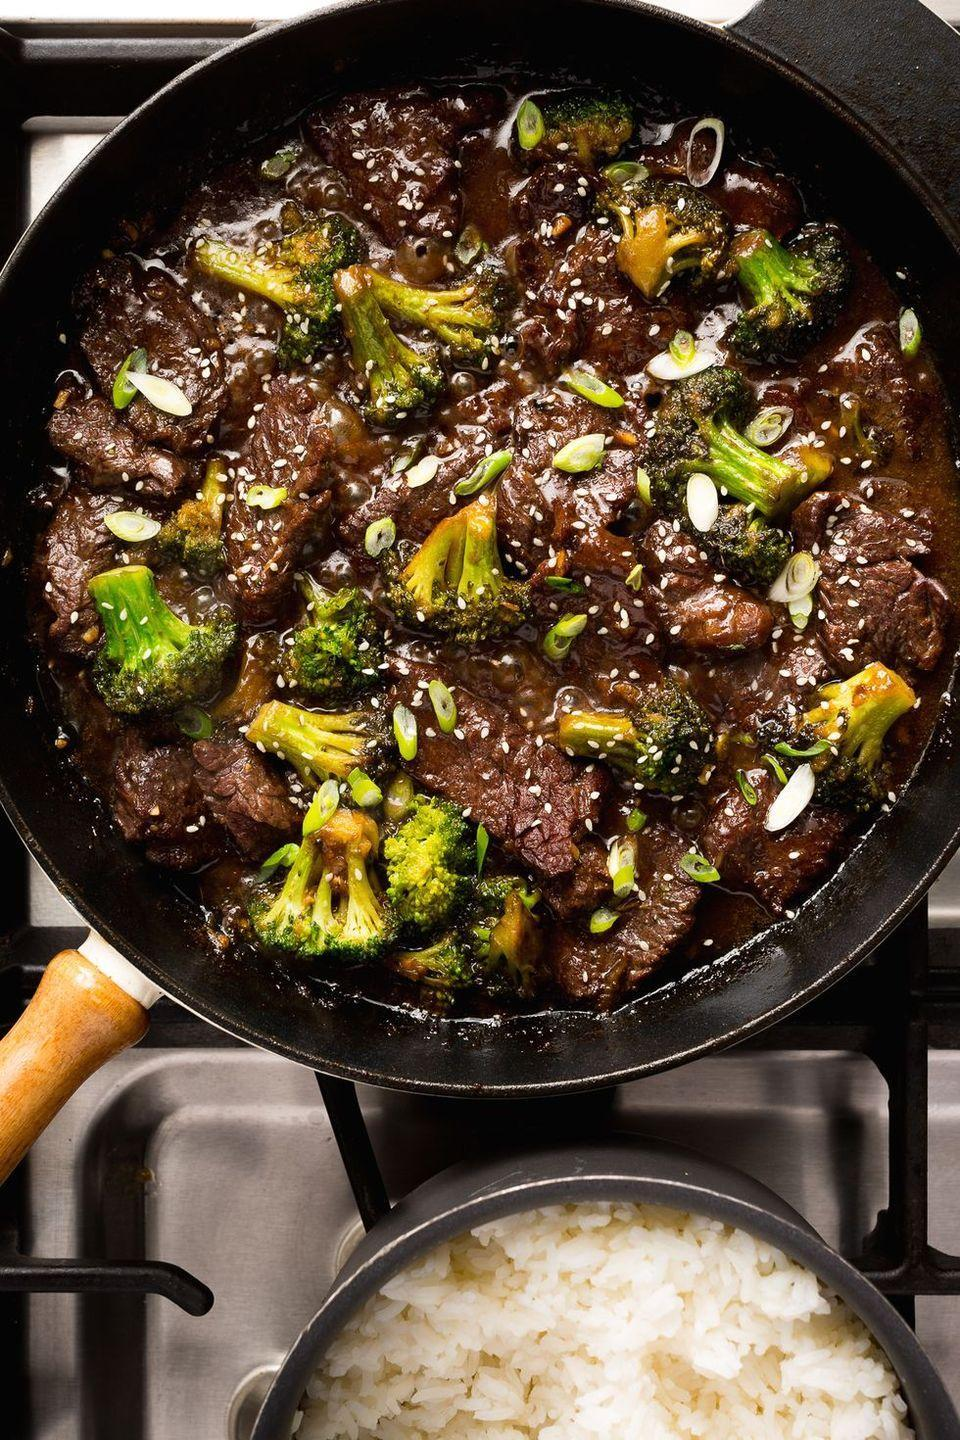 """<p>With an unbelievably delicious sauce, this beef and broccoli rivals the best takeaway.</p><p>Get the <a href=""""https://www.delish.com/uk/cooking/recipes/a28756372/beef-and-broccoli-noodles-recipe/"""" rel=""""nofollow noopener"""" target=""""_blank"""" data-ylk=""""slk:Beef and Broccoli Stir Fry"""" class=""""link rapid-noclick-resp"""">Beef and Broccoli Stir Fry</a> recipe.</p>"""